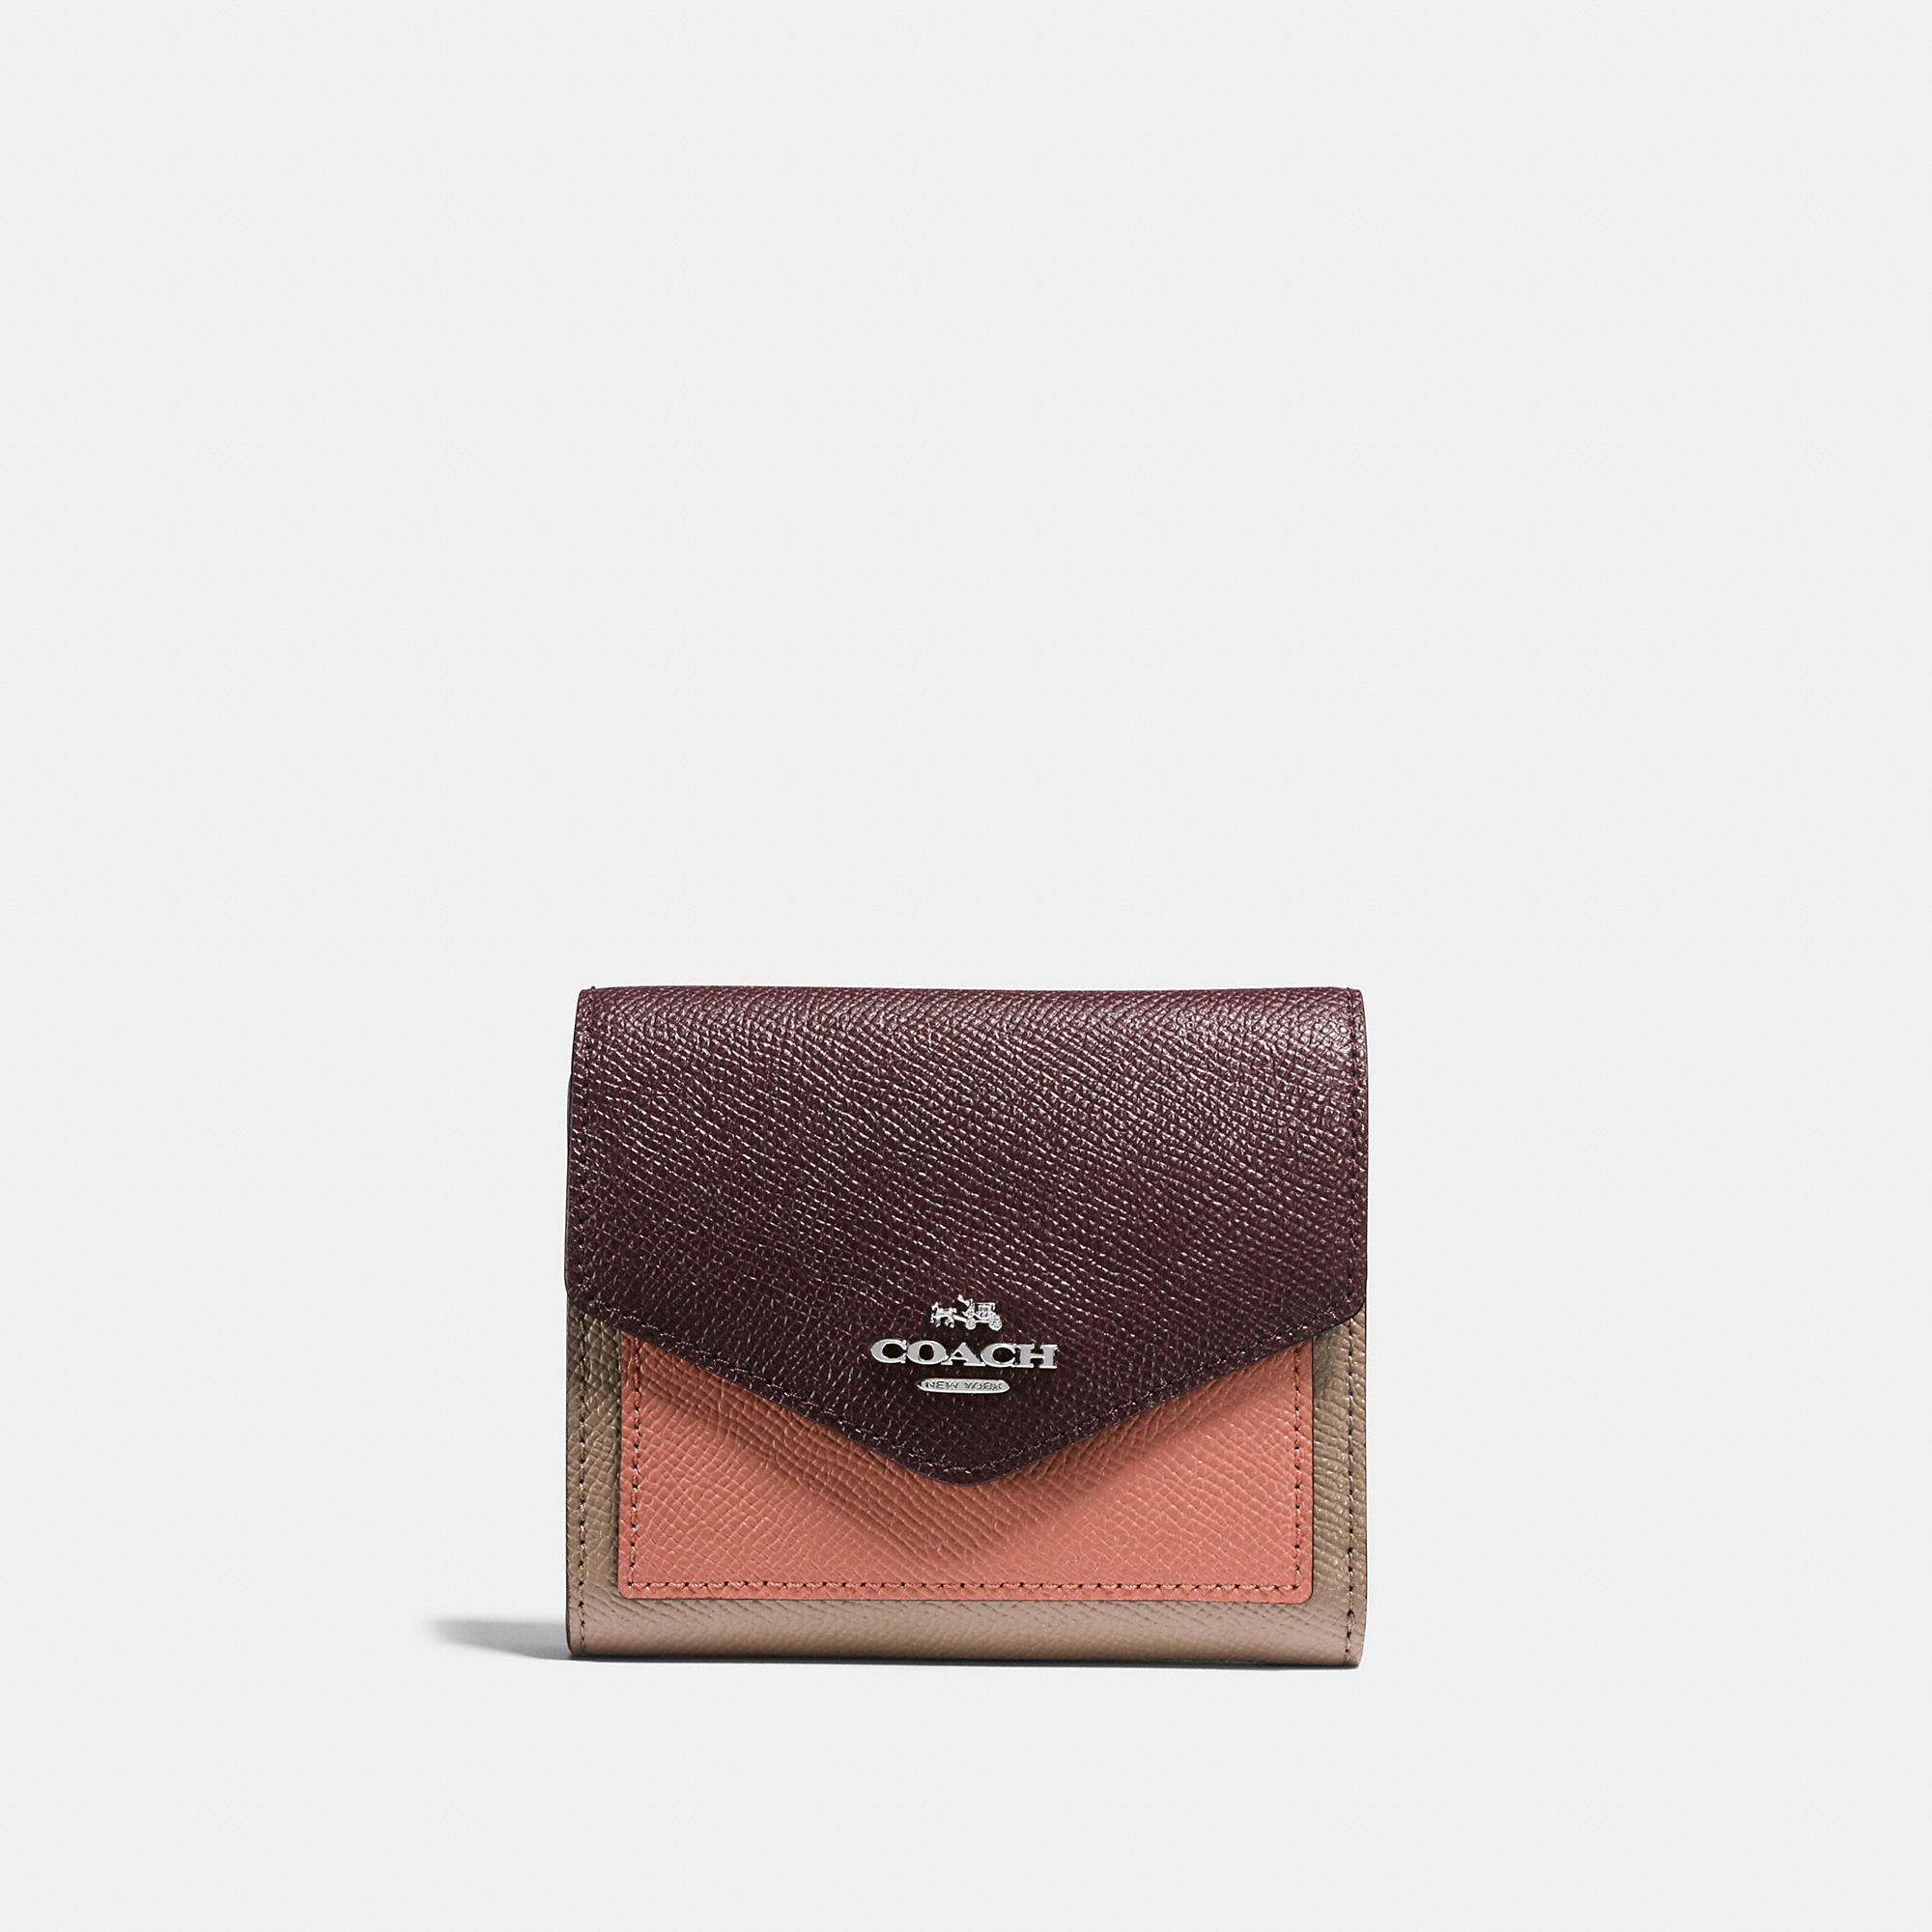 Coach Small Wallet In Colorblock Leather